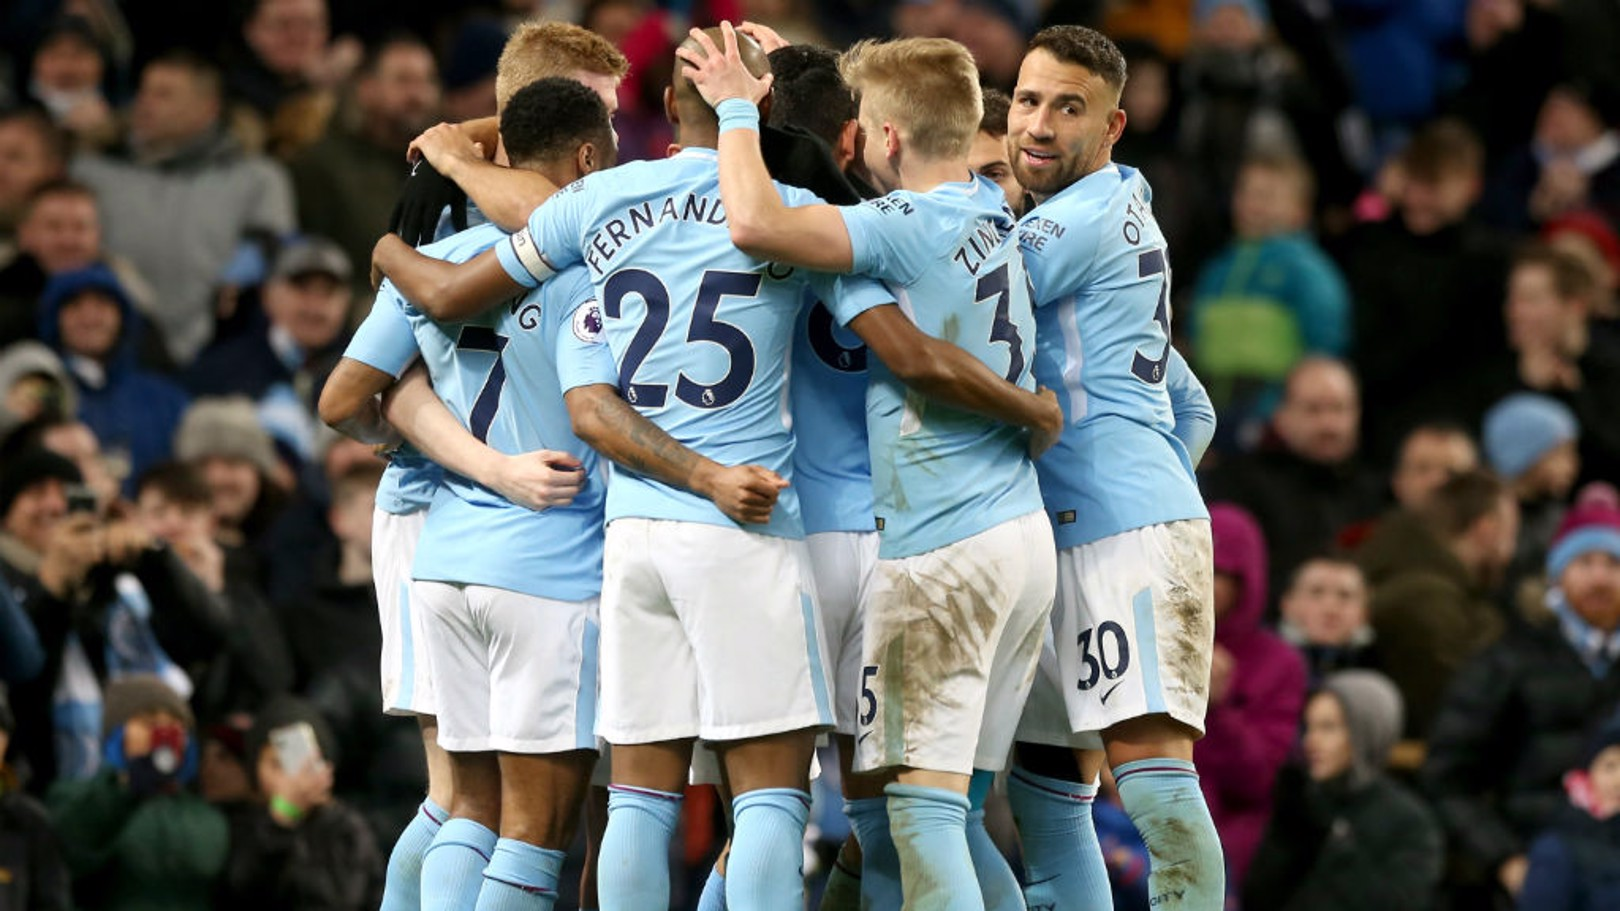 THREE: The team celebrate together after Sergio Aguero's second goal of the afternoon.